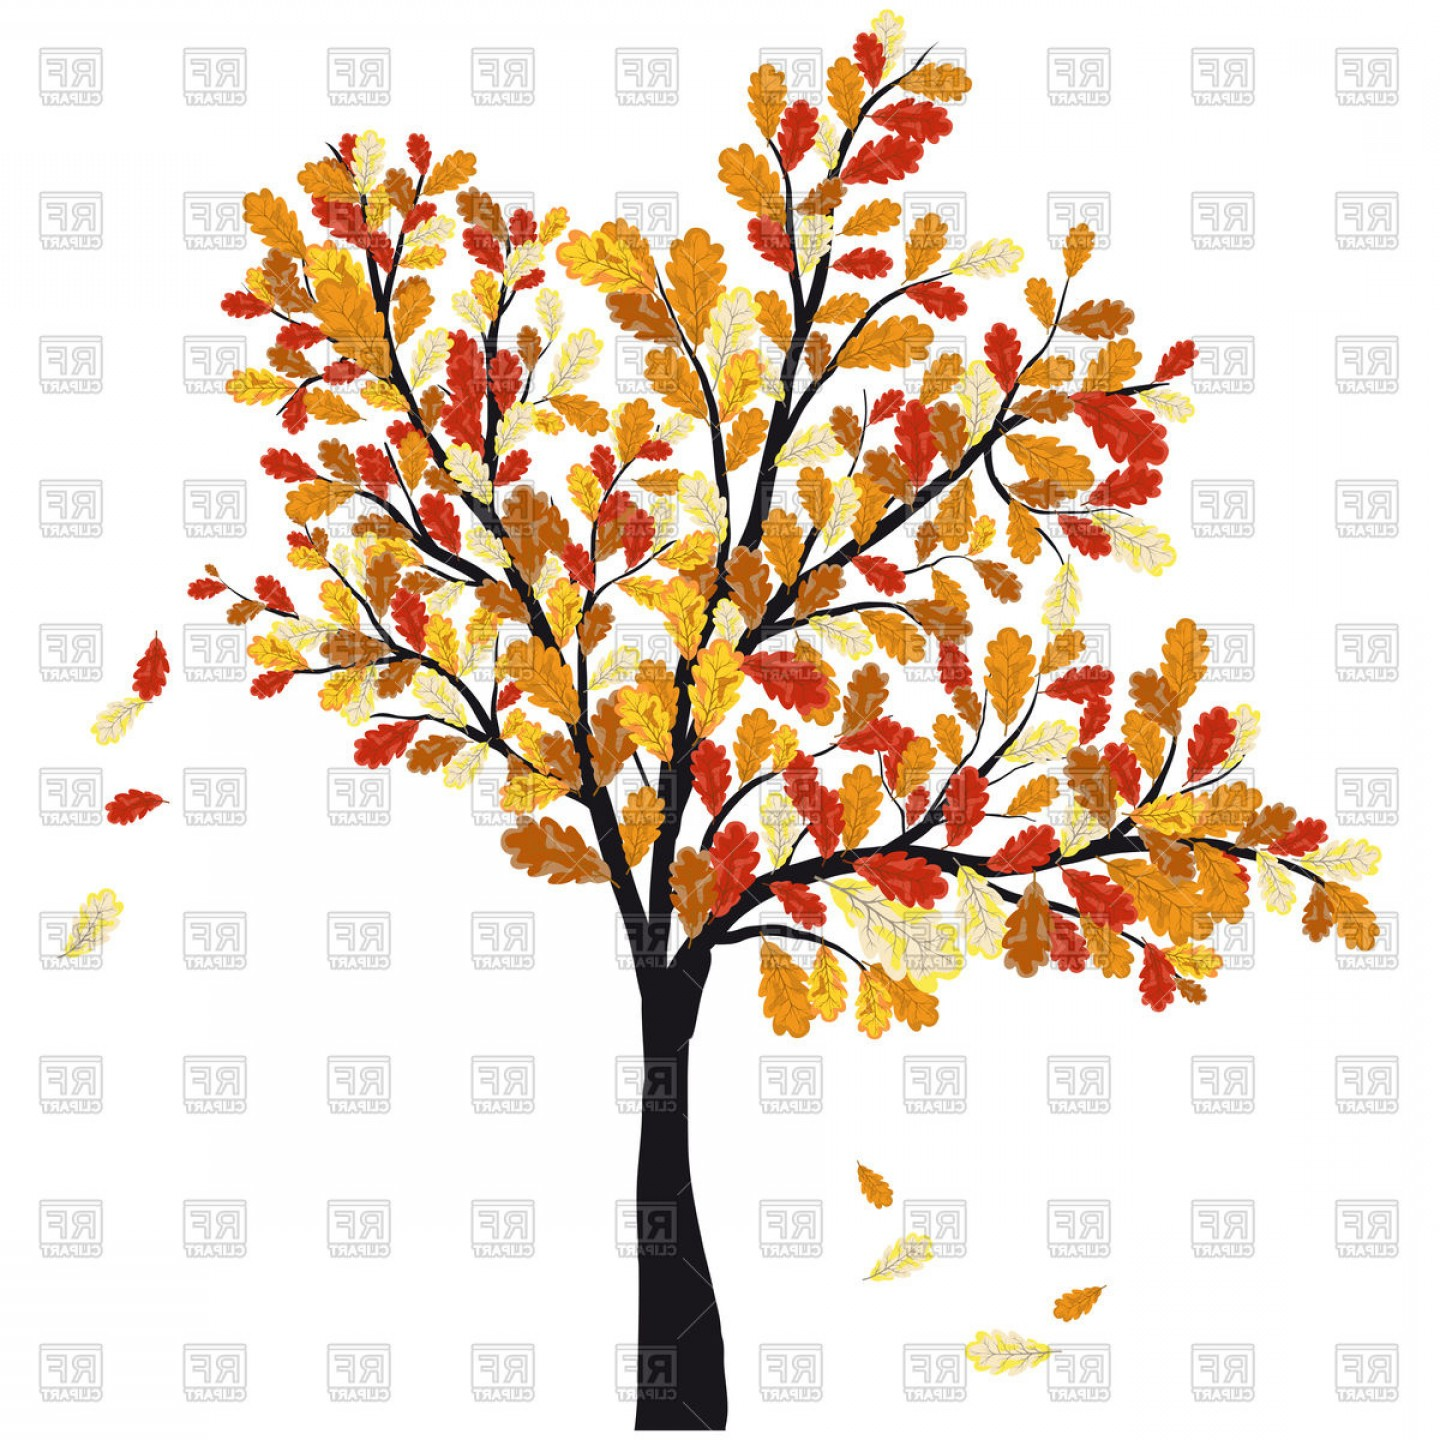 Shabby fall clipart clip art royalty free download Autumn Oak Tree With Falling Leaves Vector Clipart | CQRecords clip art royalty free download